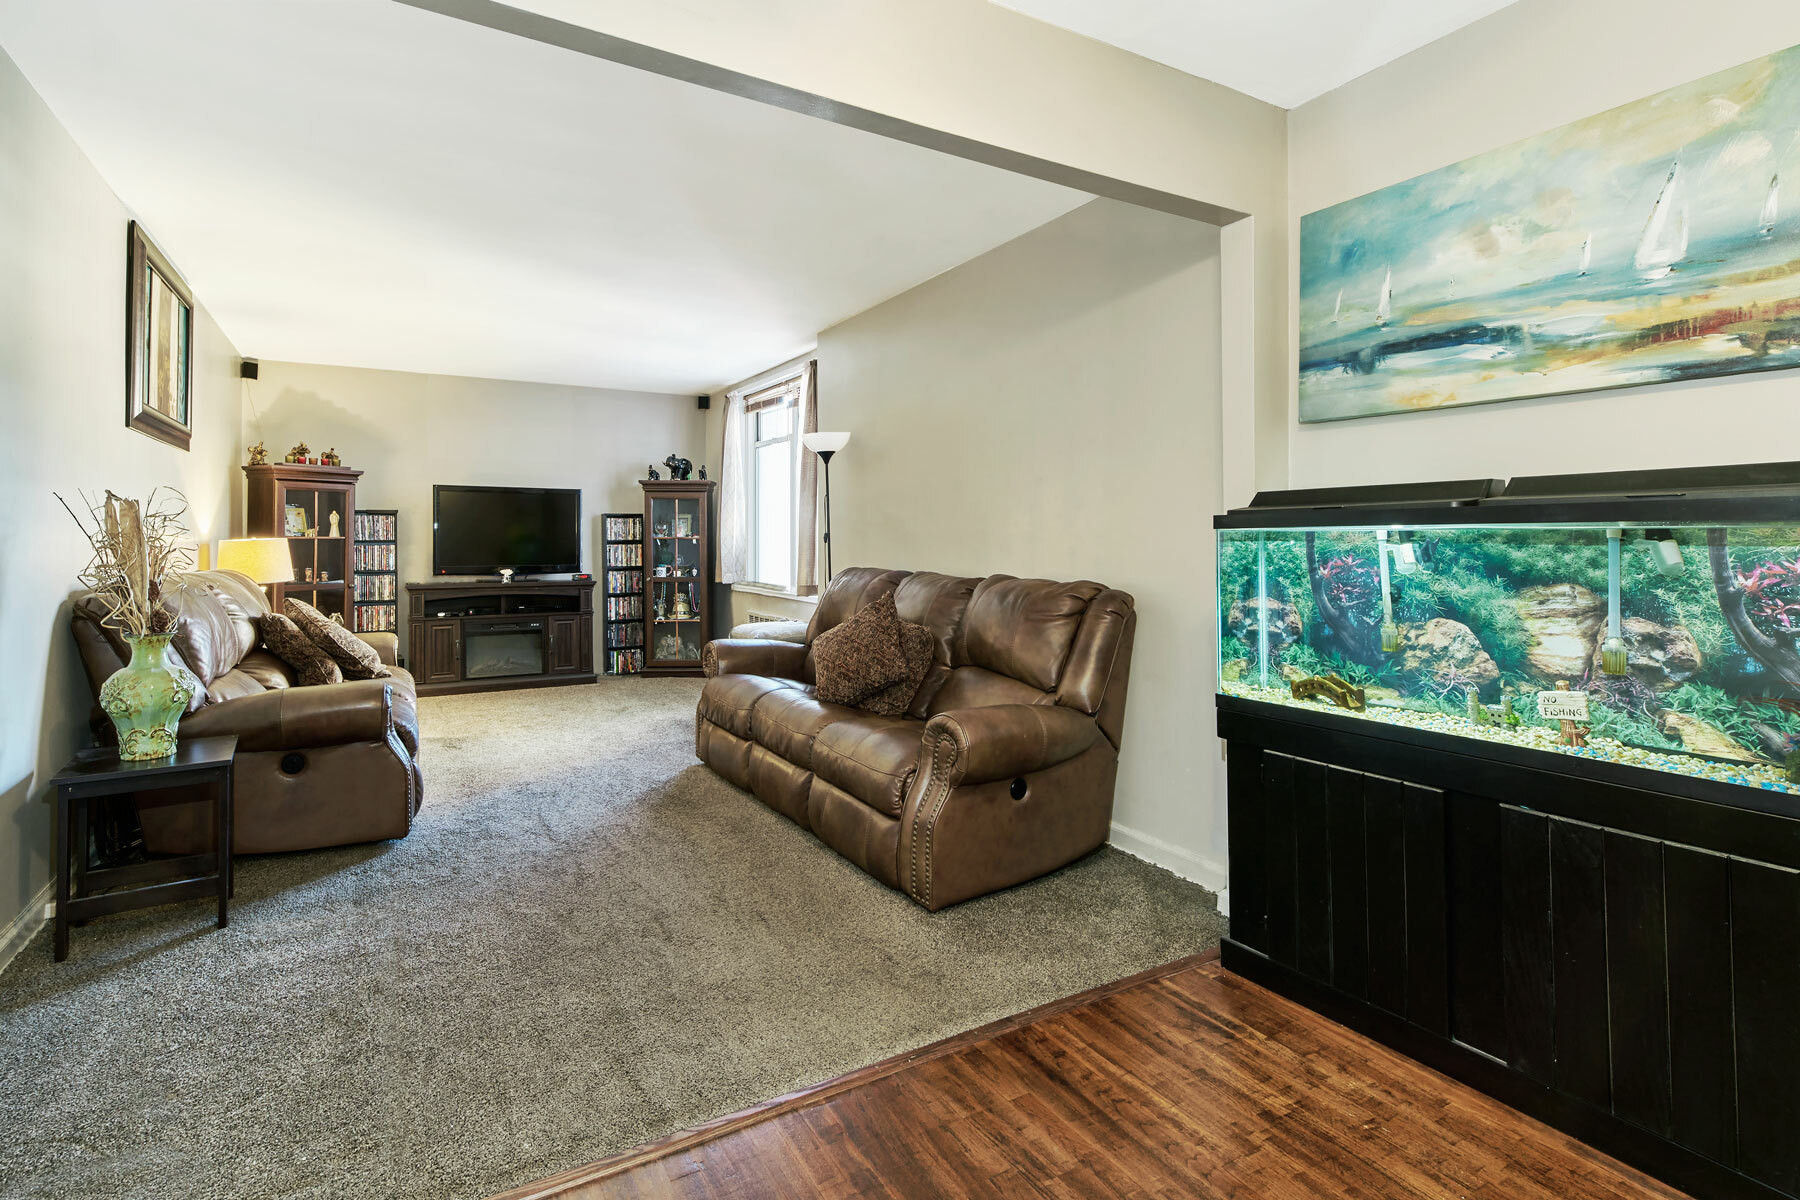 Remodeled 2-Bedroom House In Bronx